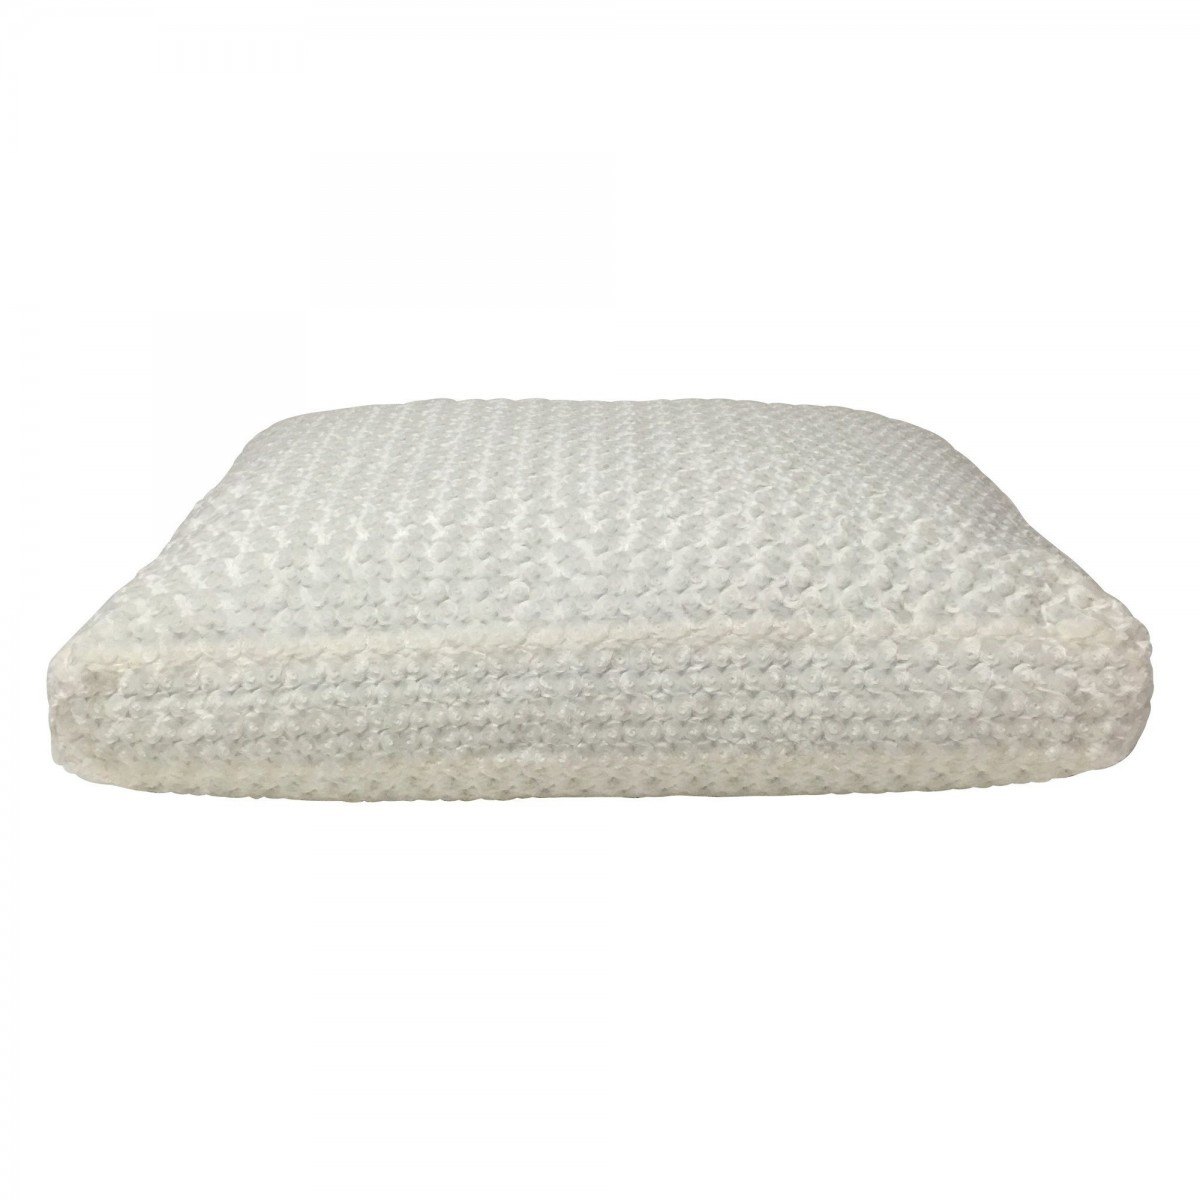 Floor Pillow Luxury Bed